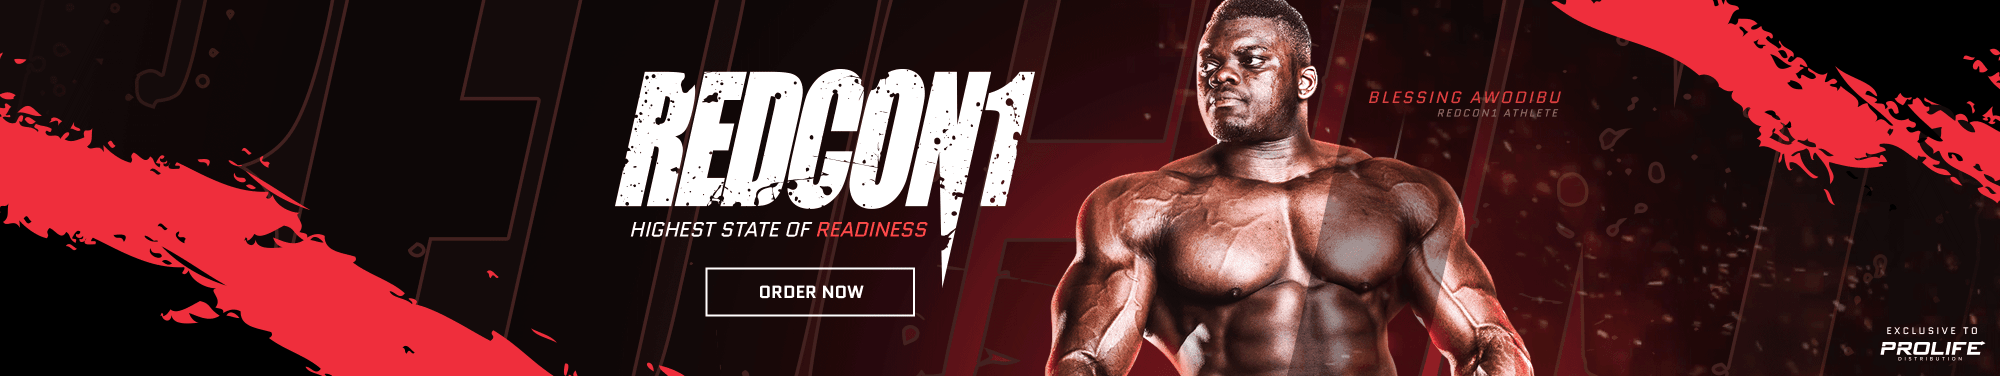 Redcon1 Banner